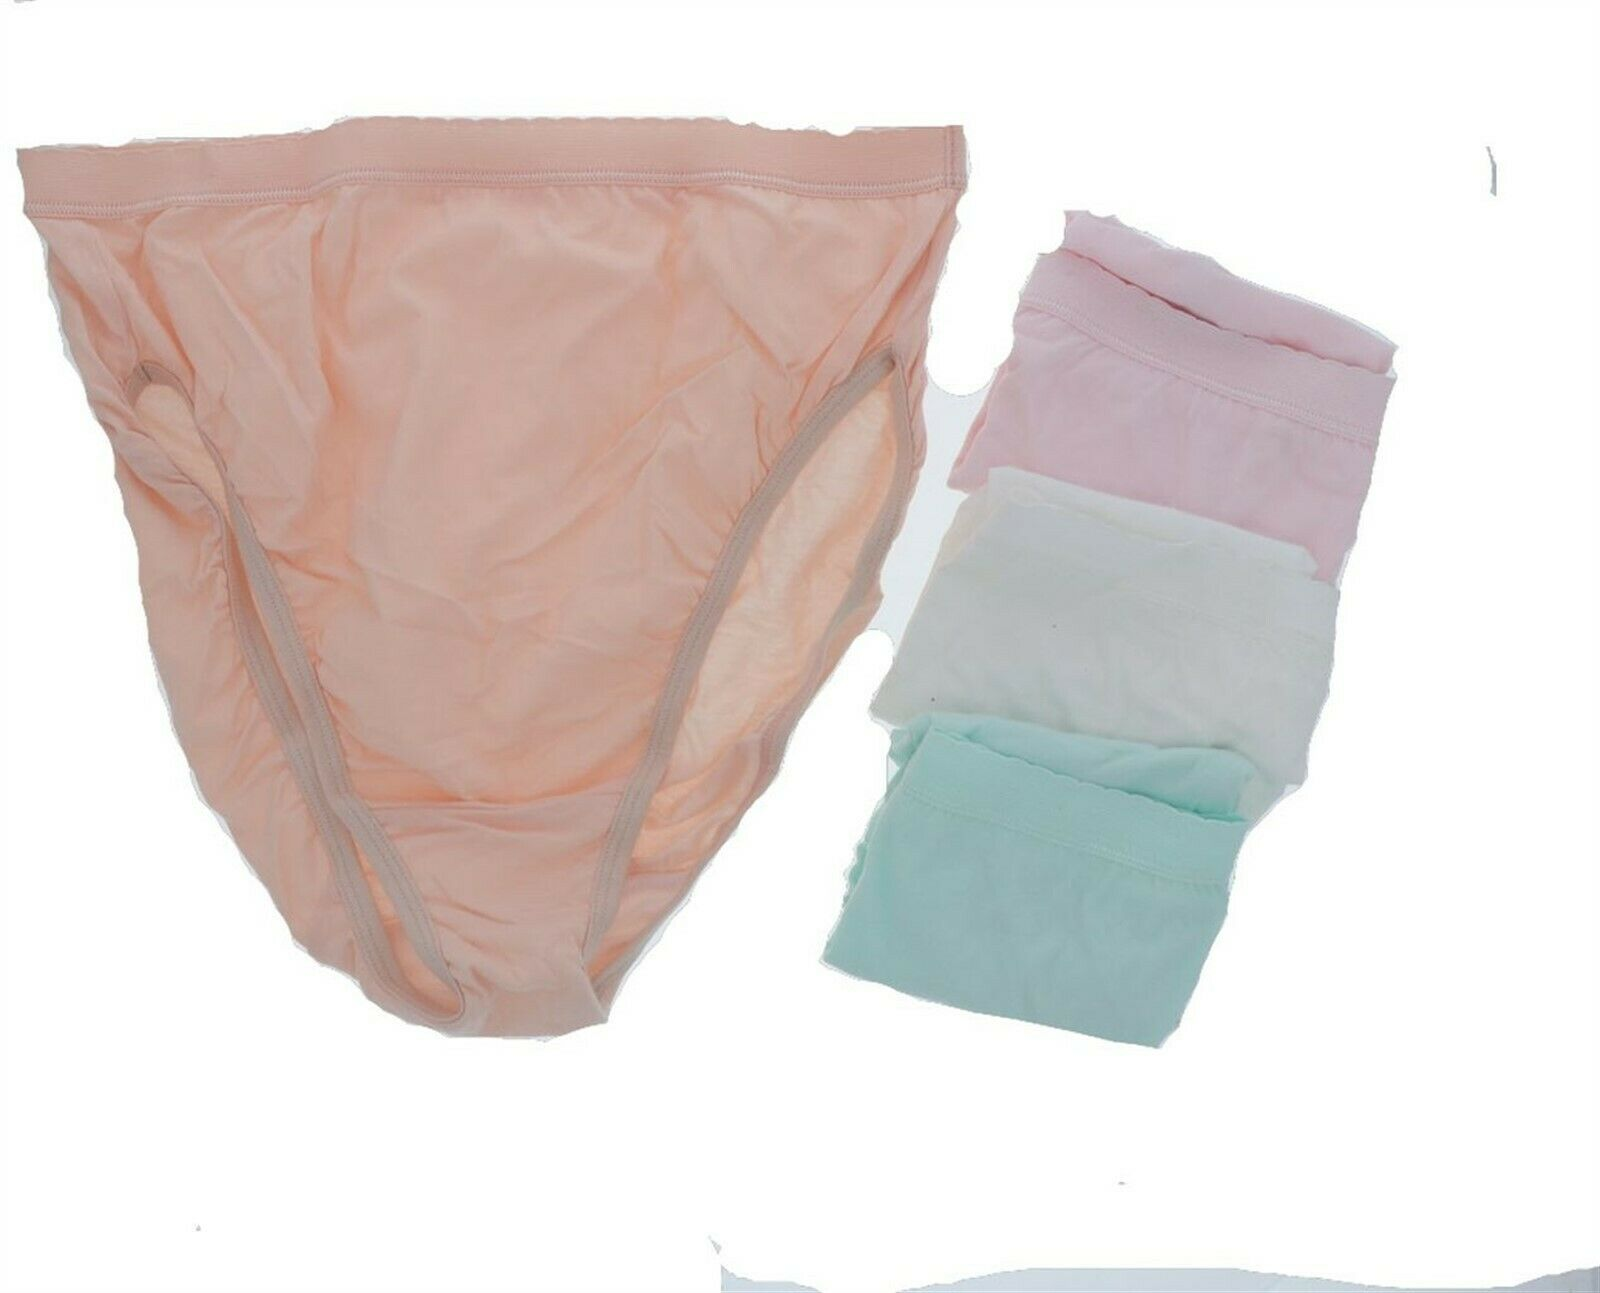 4 Breezies UltimAir Cotton Full Briefs Panties Size 7 Clothing Size 10 Bright